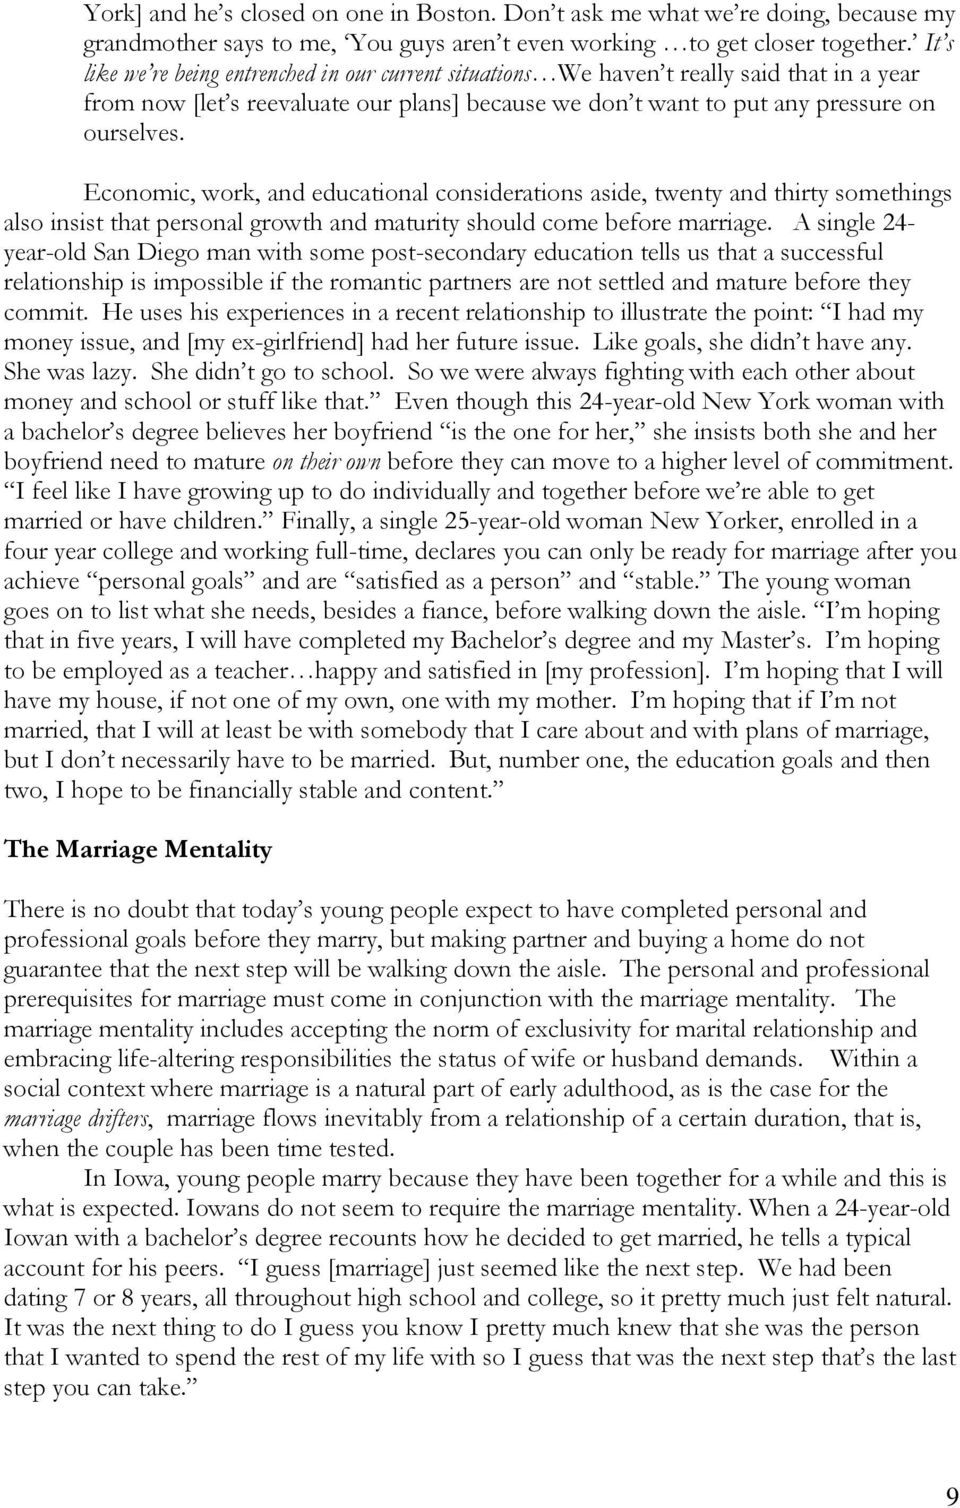 Economic, work, and educational considerations aside, twenty and thirty somethings also insist that personal growth and maturity should come before marriage.